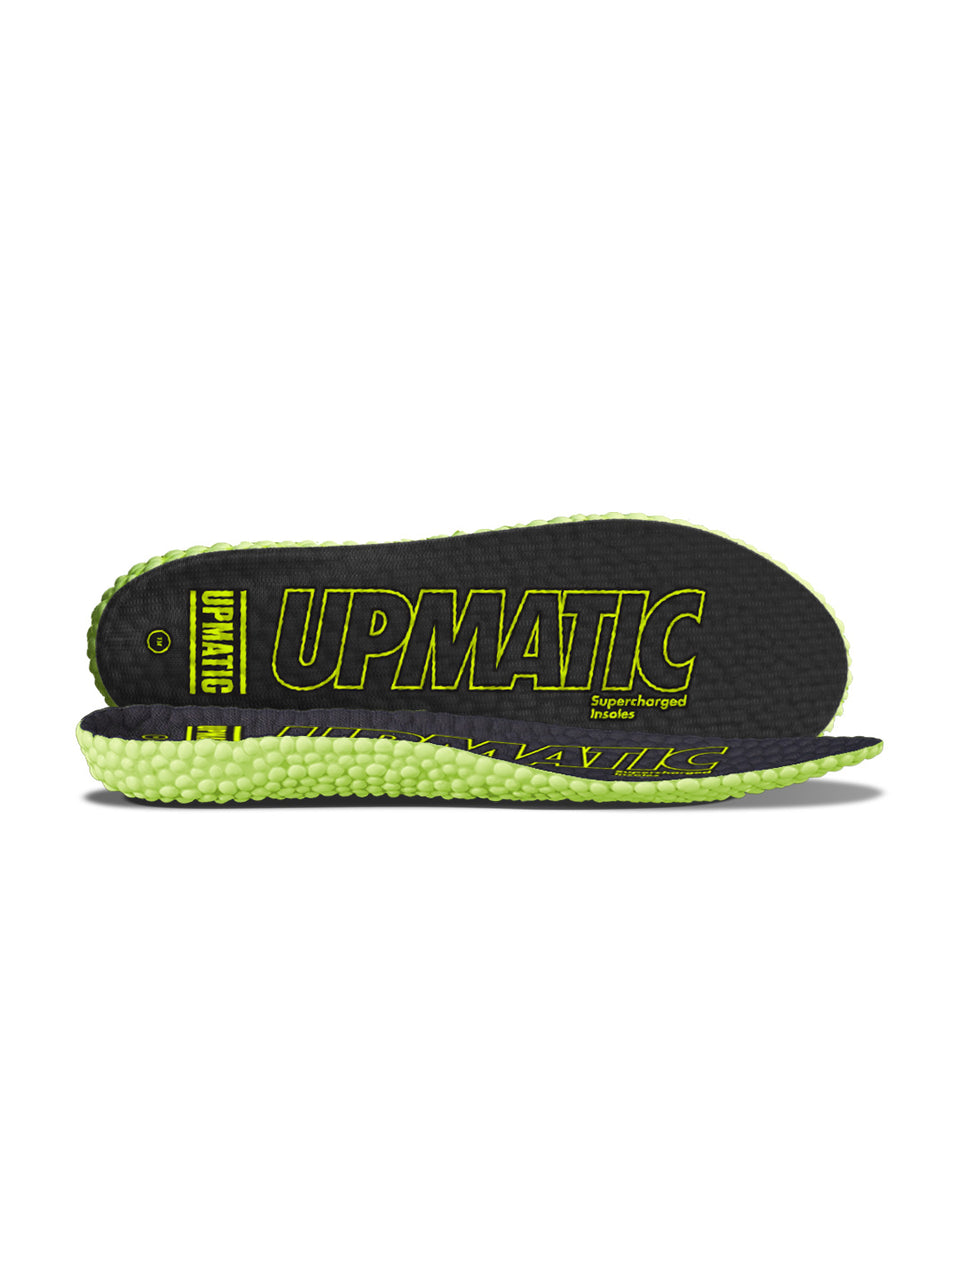 SCRATCH & DENT SALE - UPMATIC Original Slim Supercharged Insoles